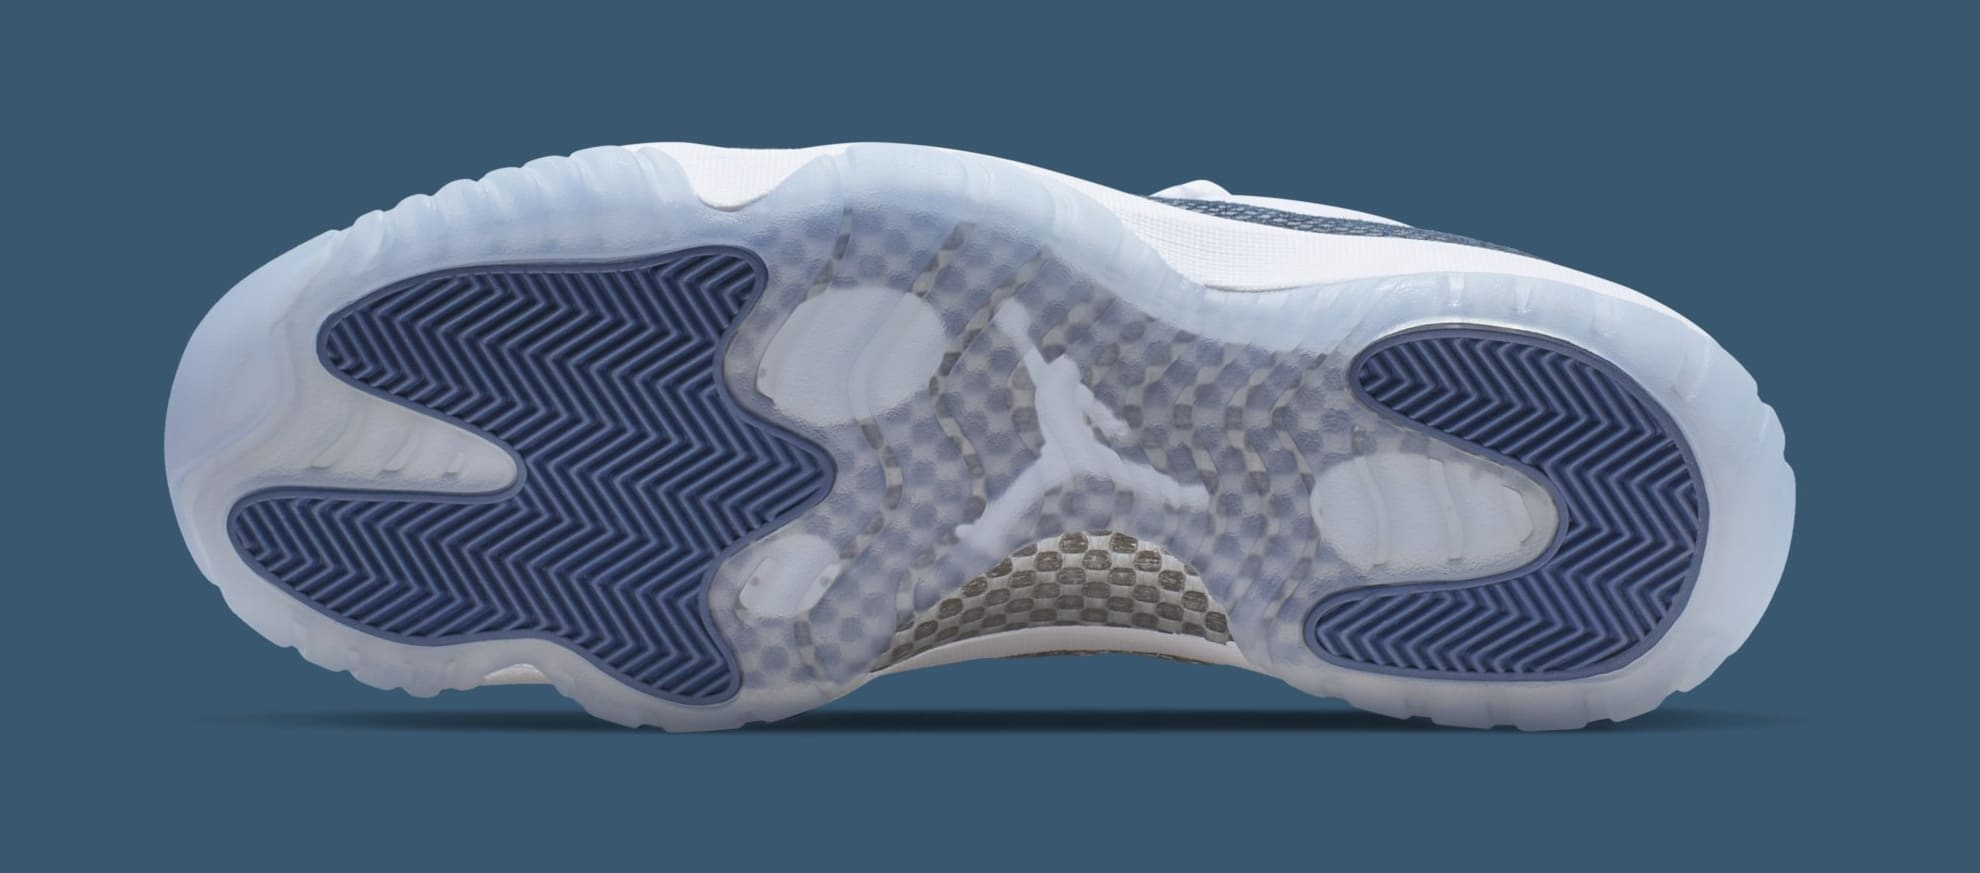 a6894e15e14b19 Image via Nike Air Jordan 11 Low  Blue Snakeskin  CD6846-102 (Bottom)